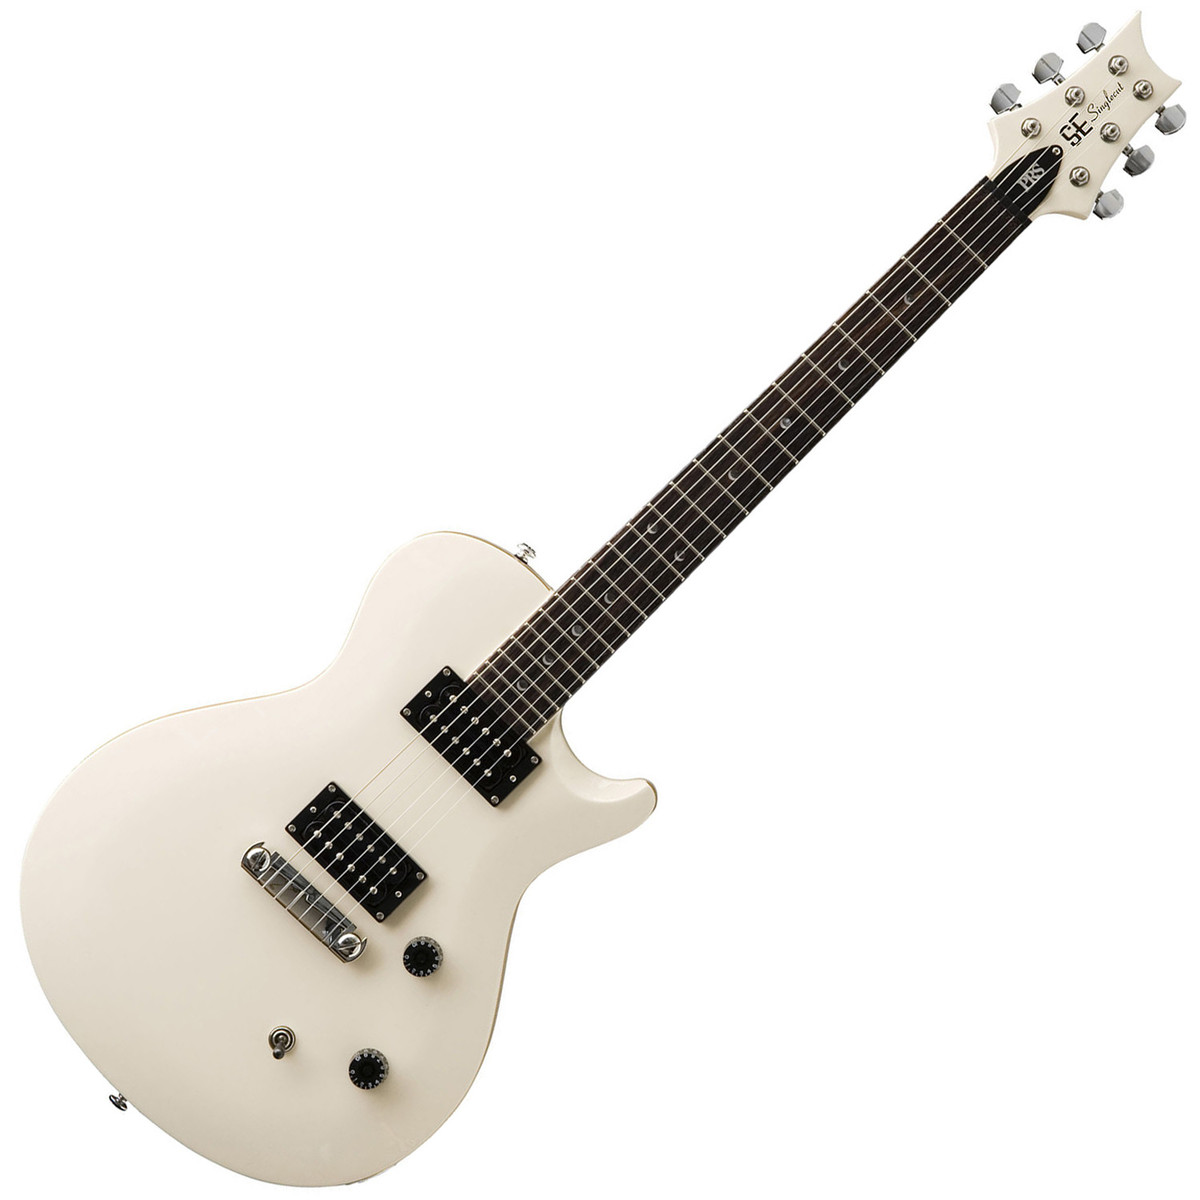 disc prs se singlecut electric guitar white with birds inlays at gear4music. Black Bedroom Furniture Sets. Home Design Ideas